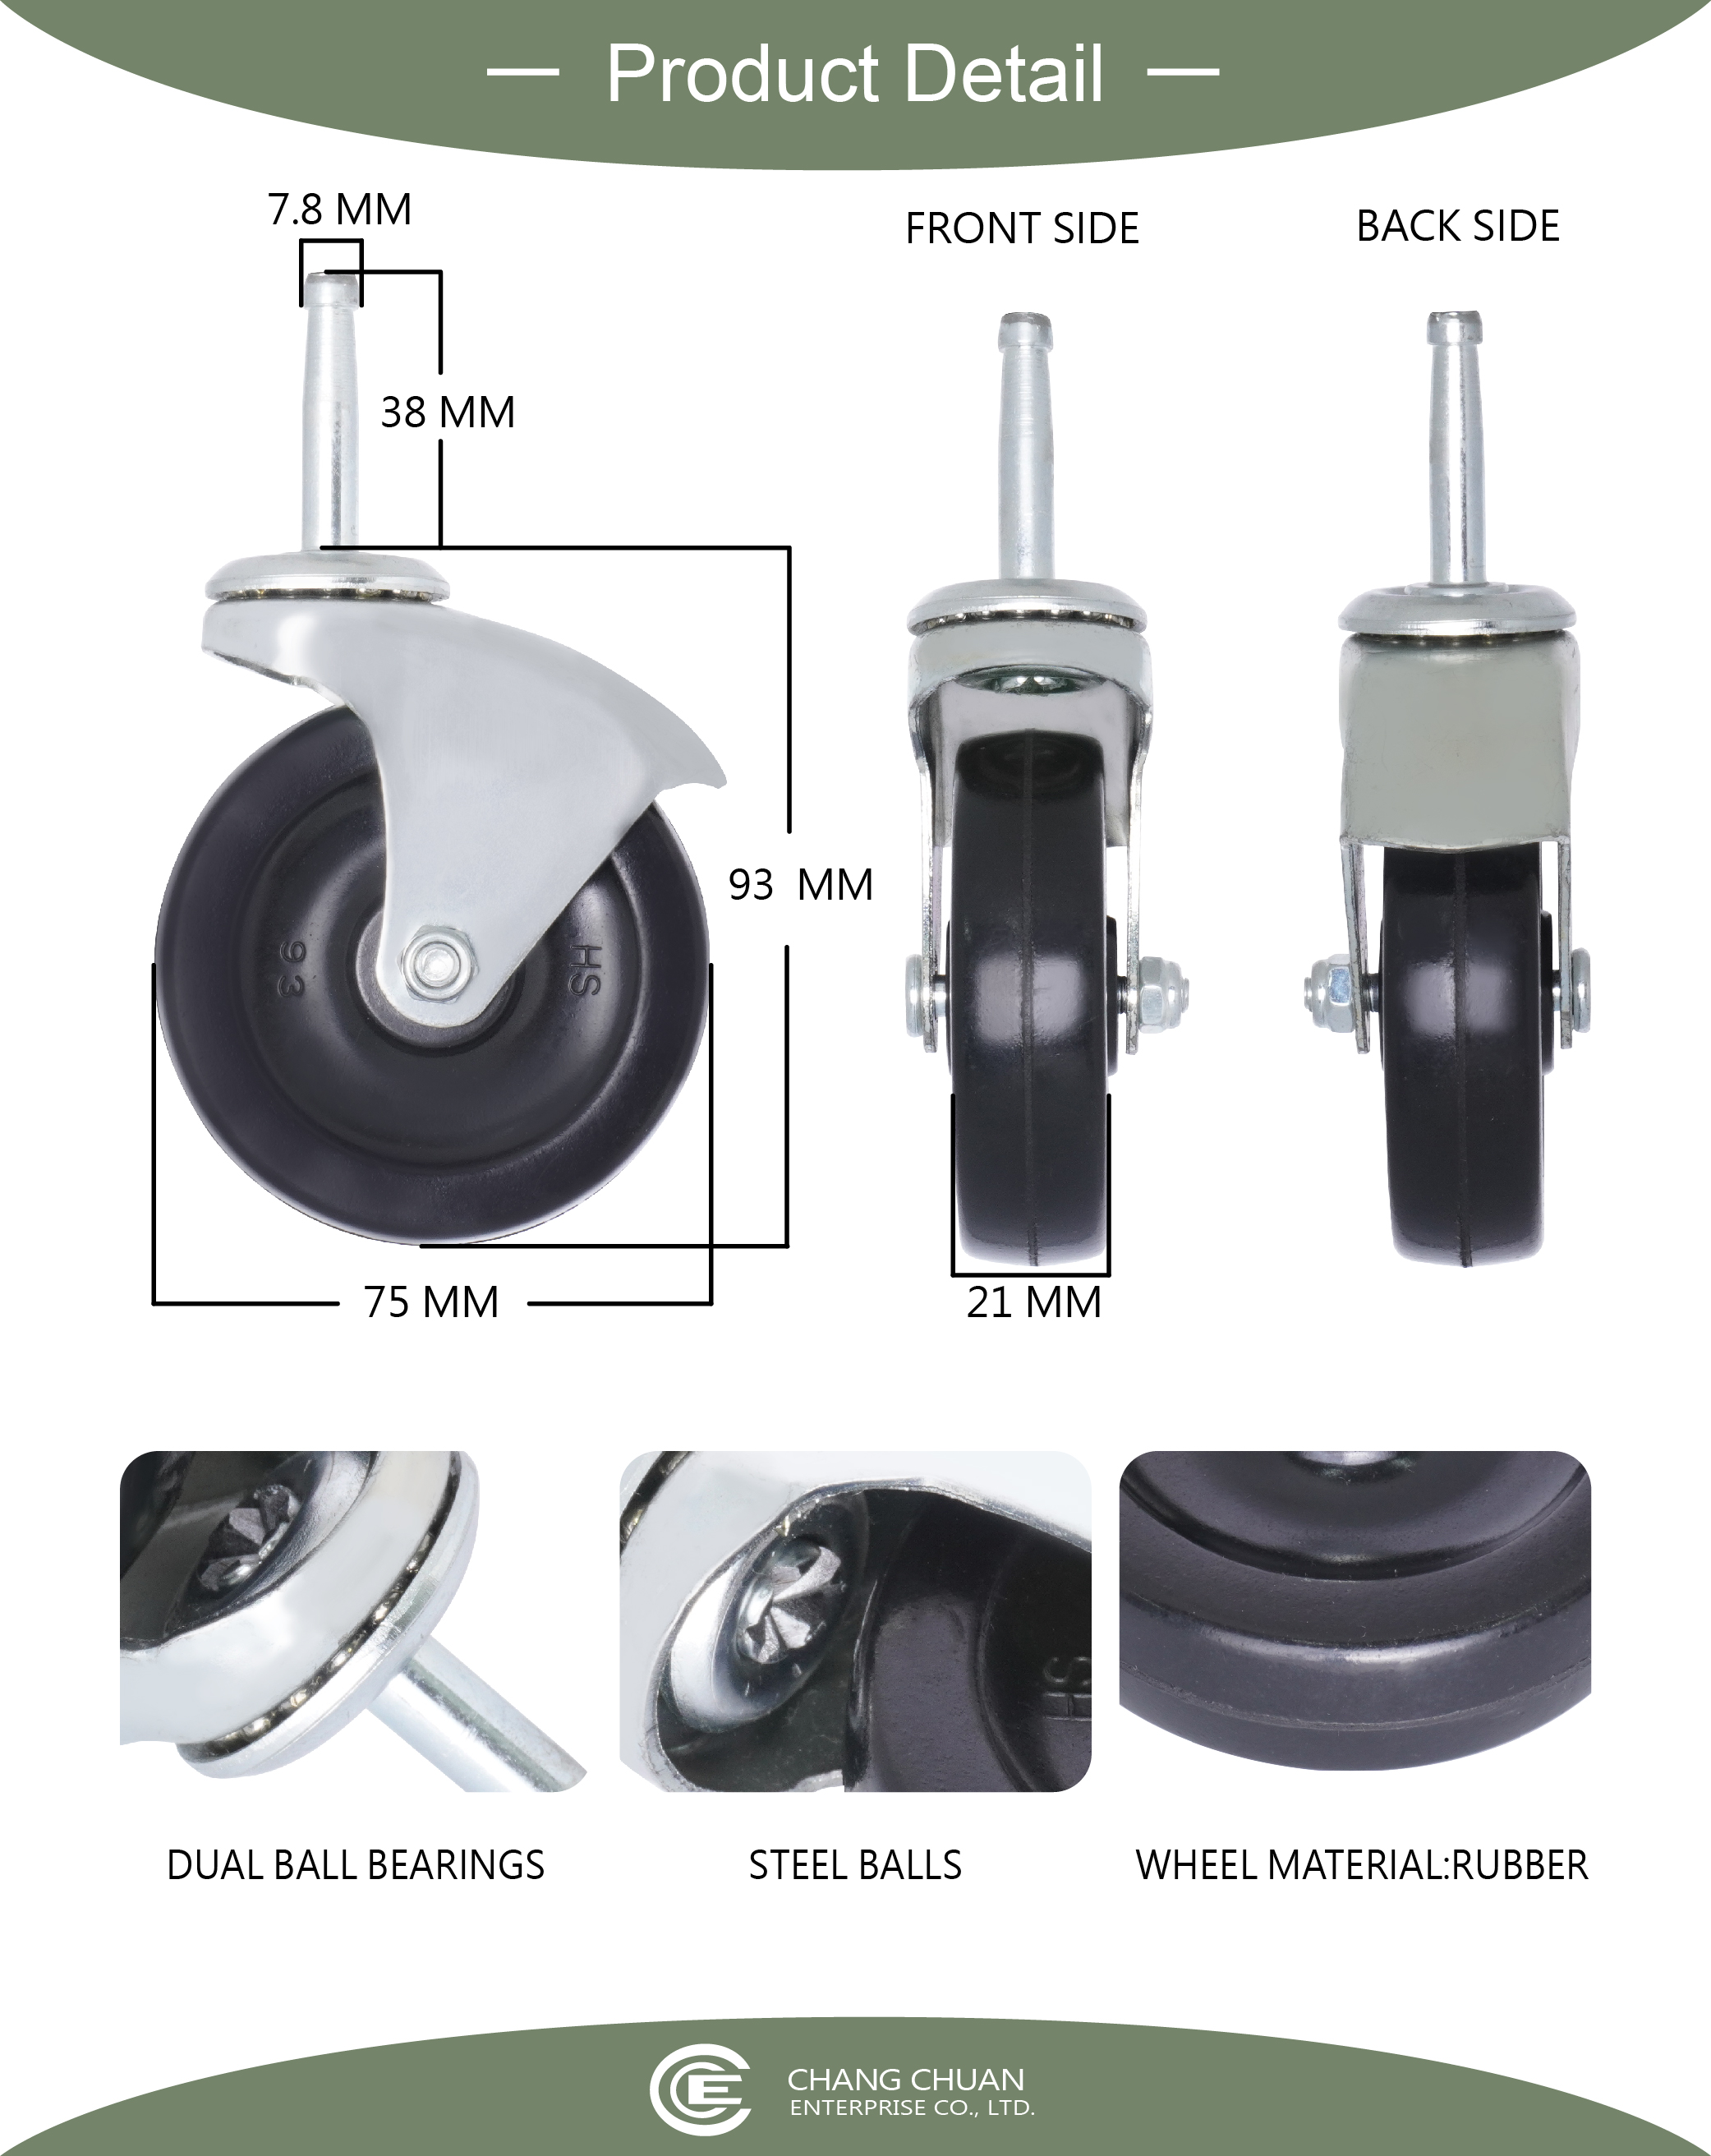 75mm Grip Neck Stem Rubber Furniture Wheels Replacement Specification.jpg